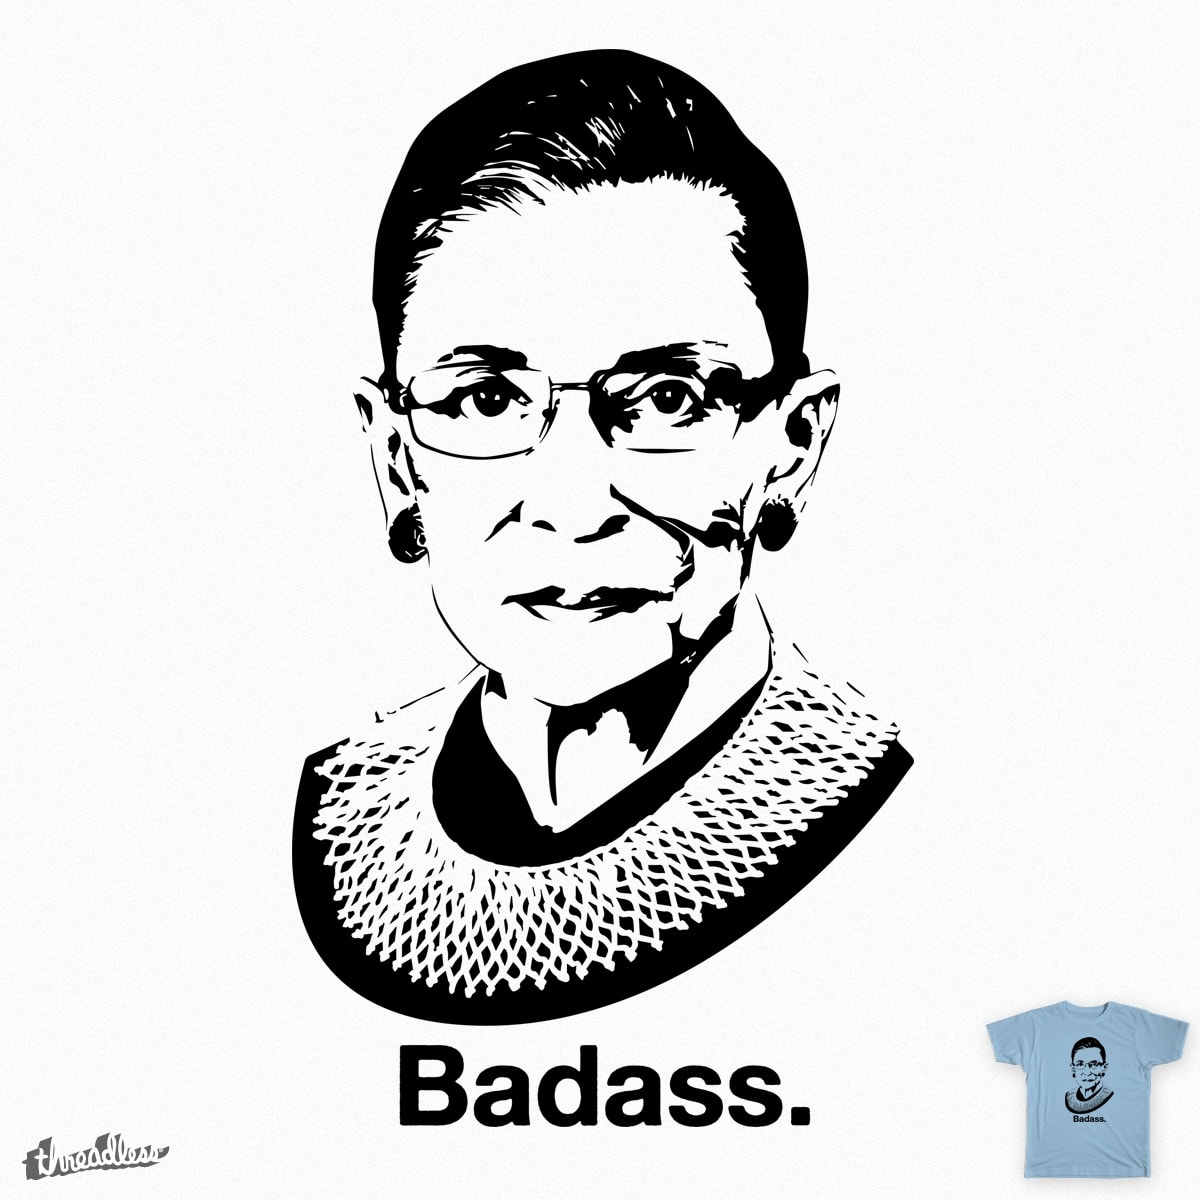 Score Rbg Is A Badass By Daisybadass On Threadless